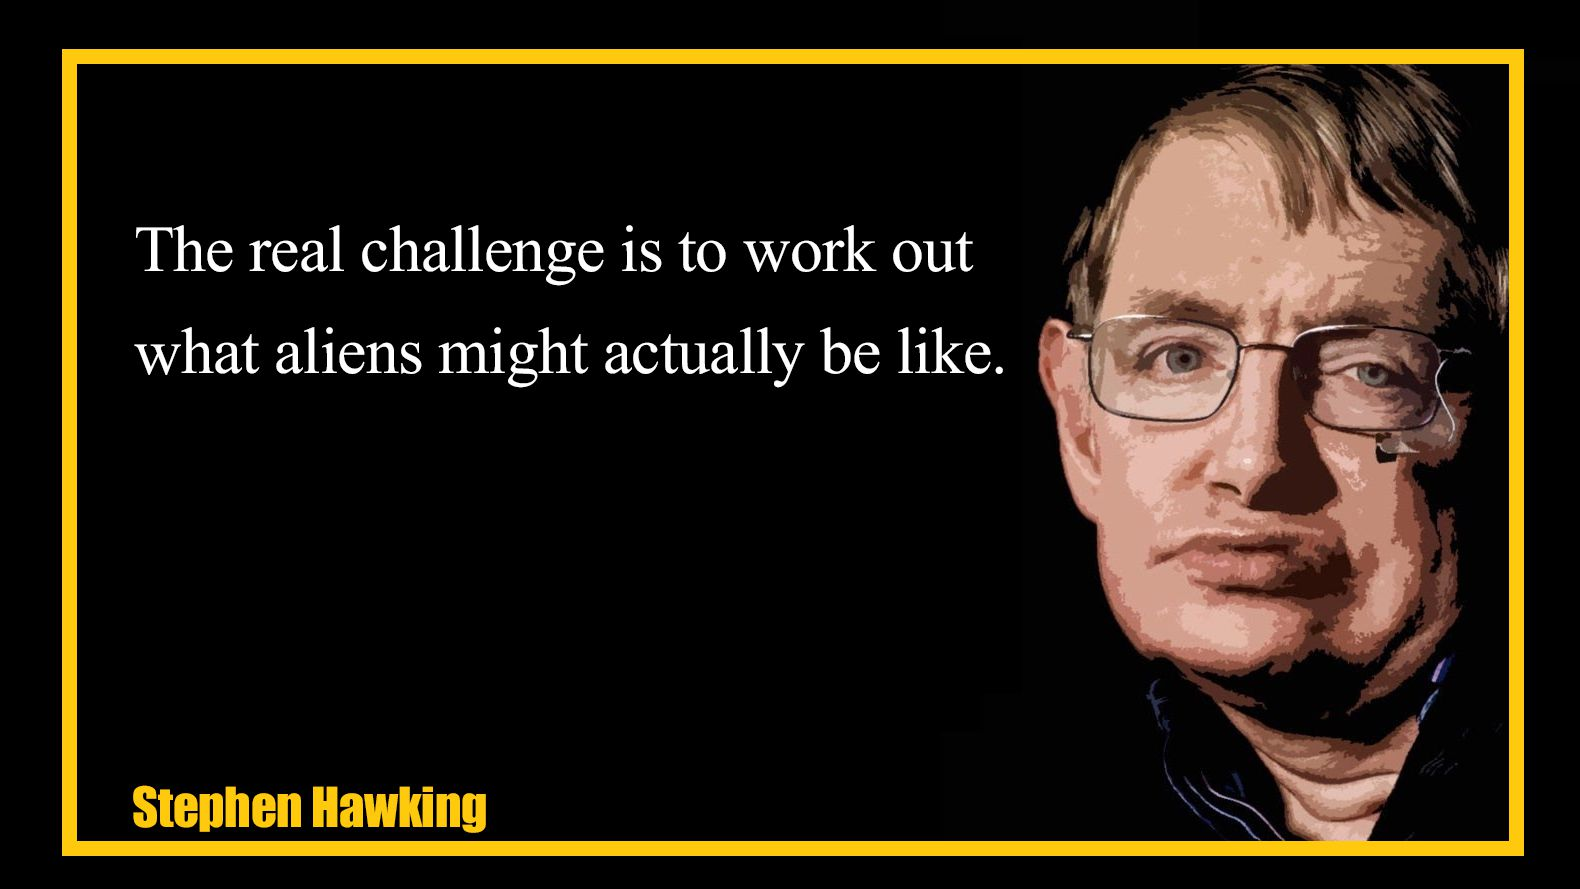 Stephen Hawking Inspiring Quotes Compilation - Writer, Inspiring The World | Inspiring Quotes | Motivation | Positivity|